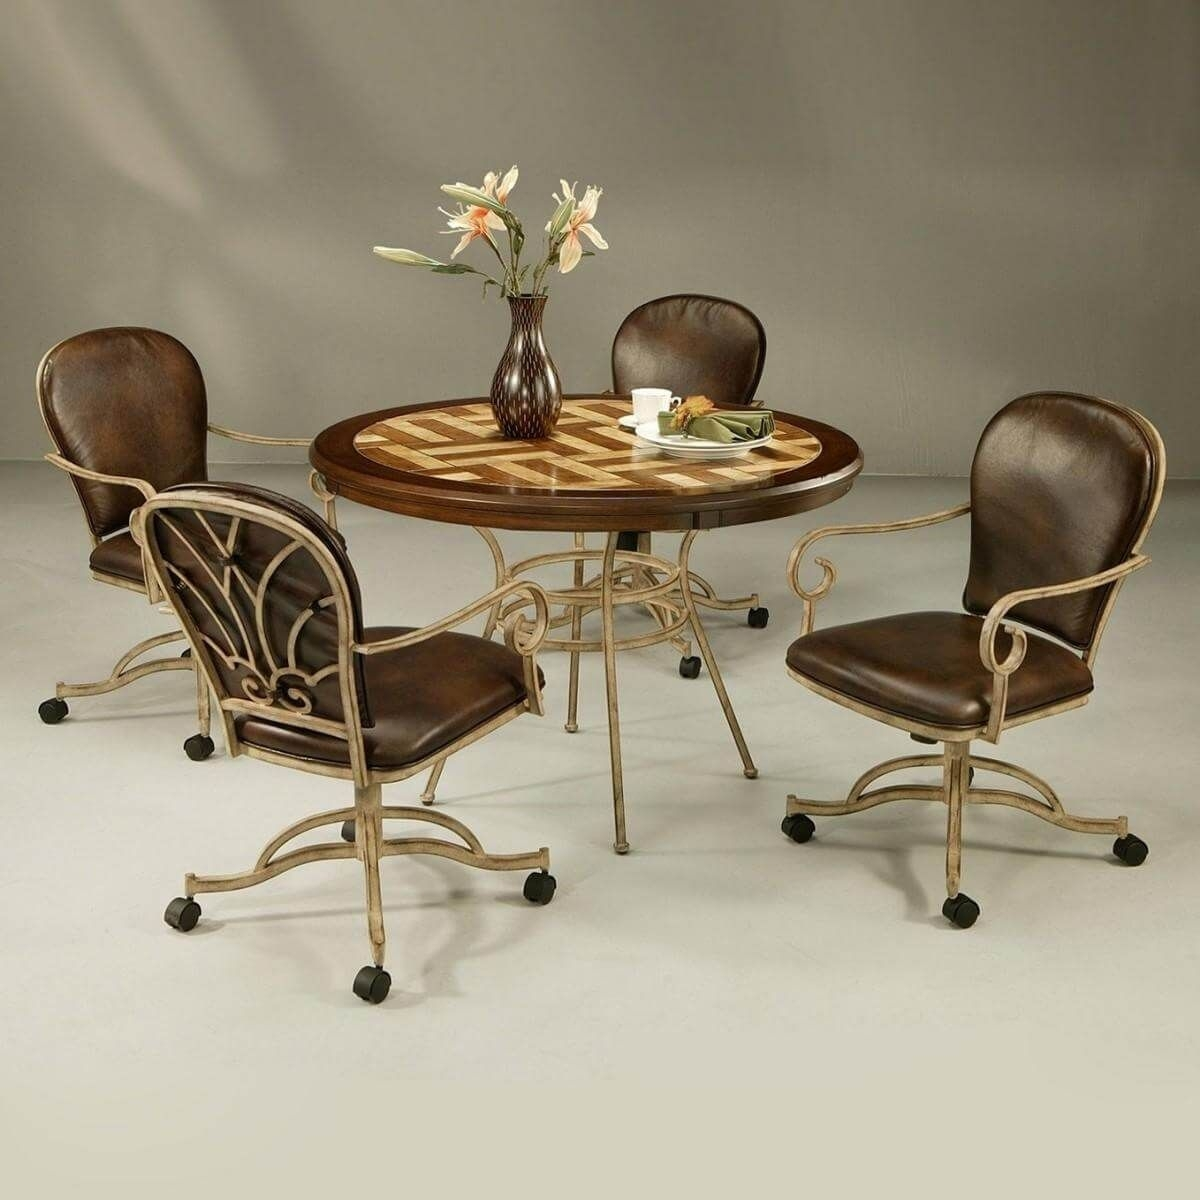 Dining Room Chairs With Wheels: Dining Chairs With Casters